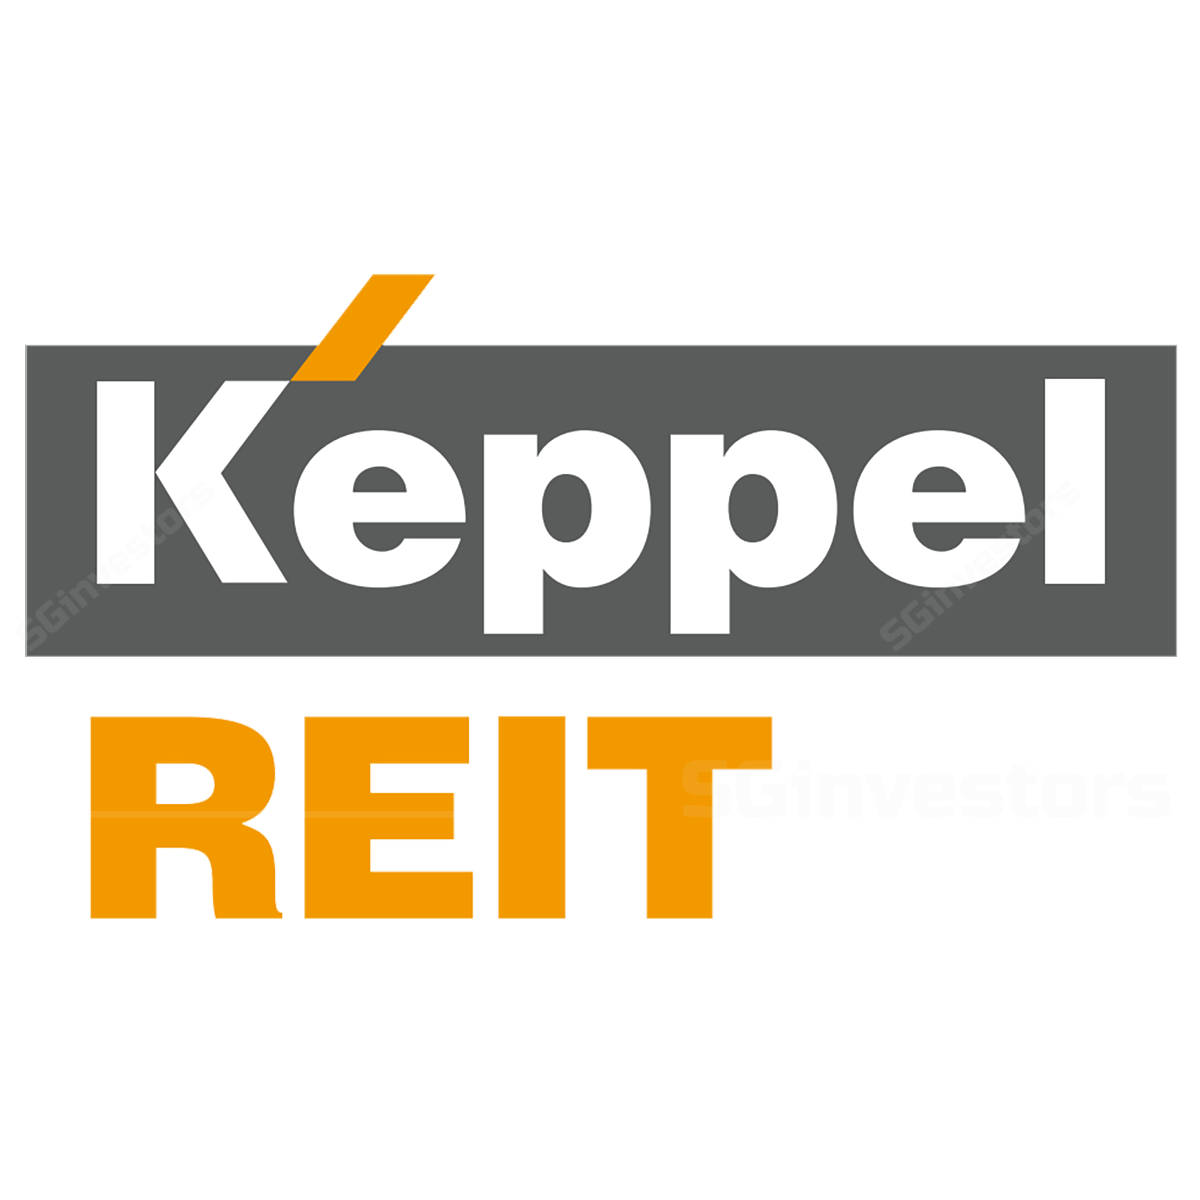 Keppel REIT - CIMB Research 2017-04-20: Business as usual